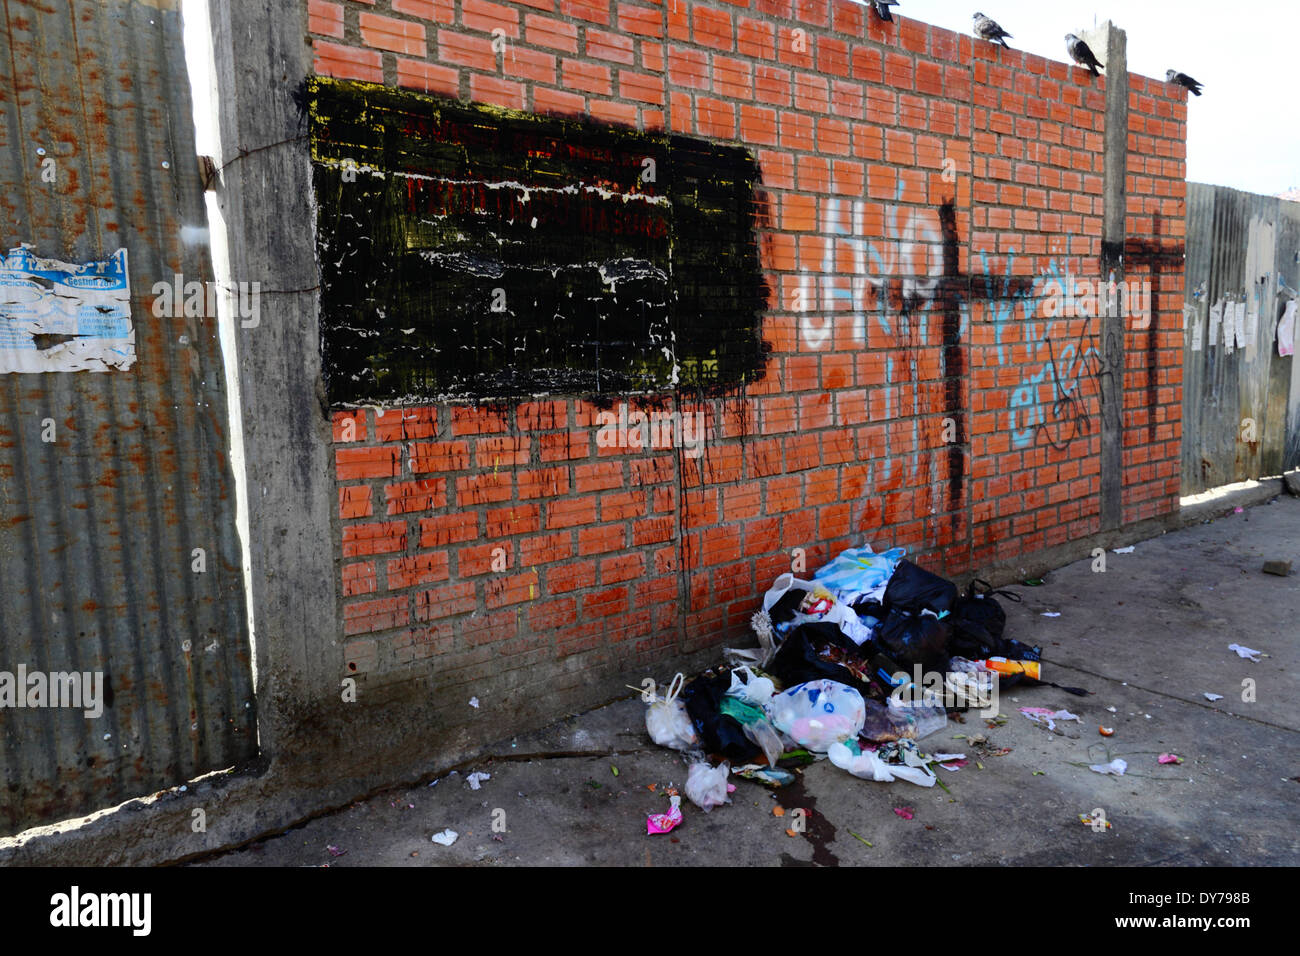 Rubbish dumped on street. Writing on wall telling people not to dump rubbish has been painted over, La Paz, Bolivia - Stock Image